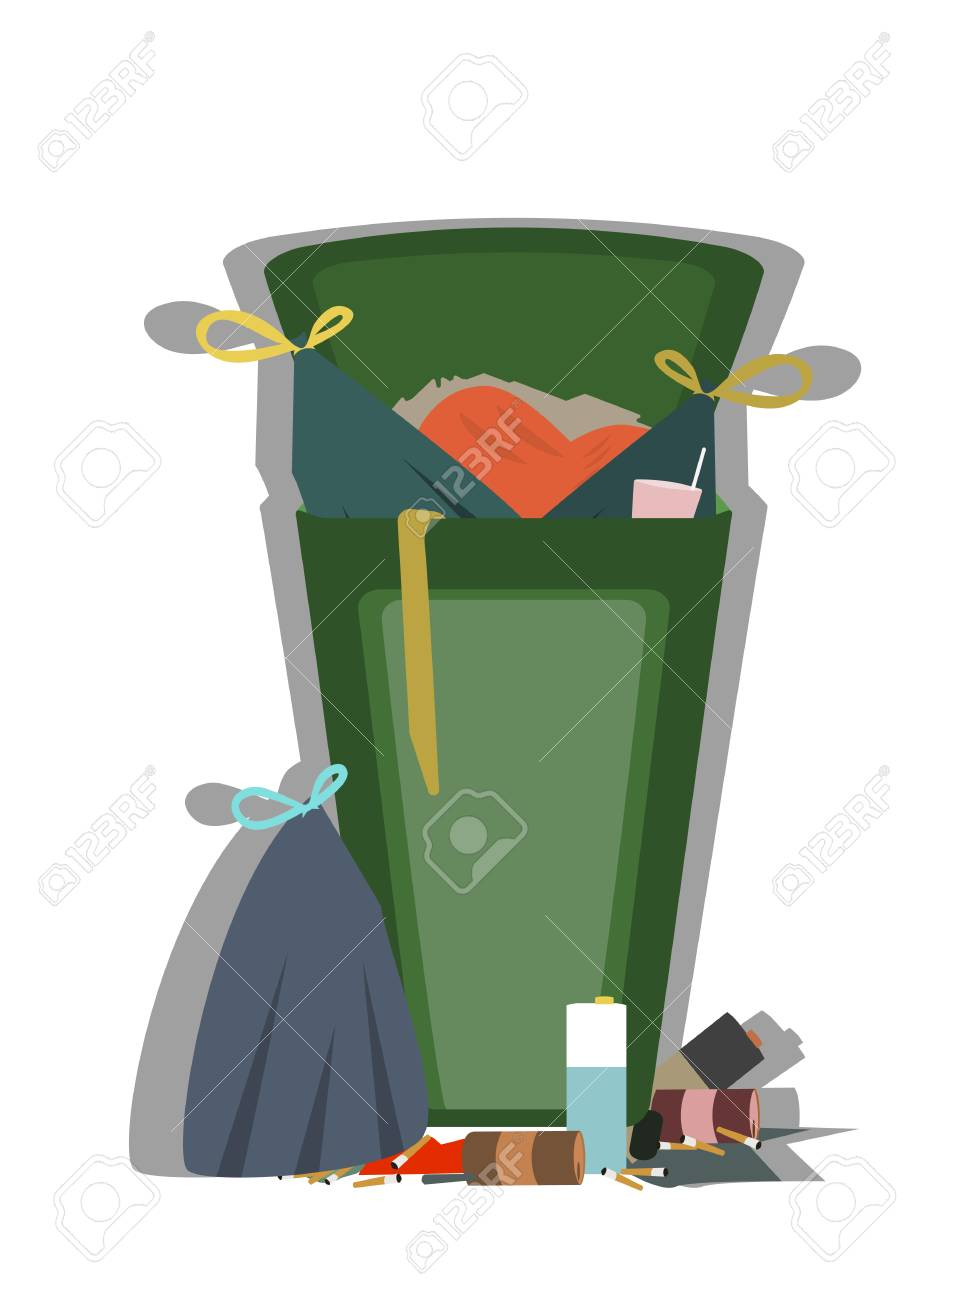 Outdoor Trash Can Full Of Garbage Isolated Vector Royalty Free Cliparts Vectors And Stock Illustration Image 100285568